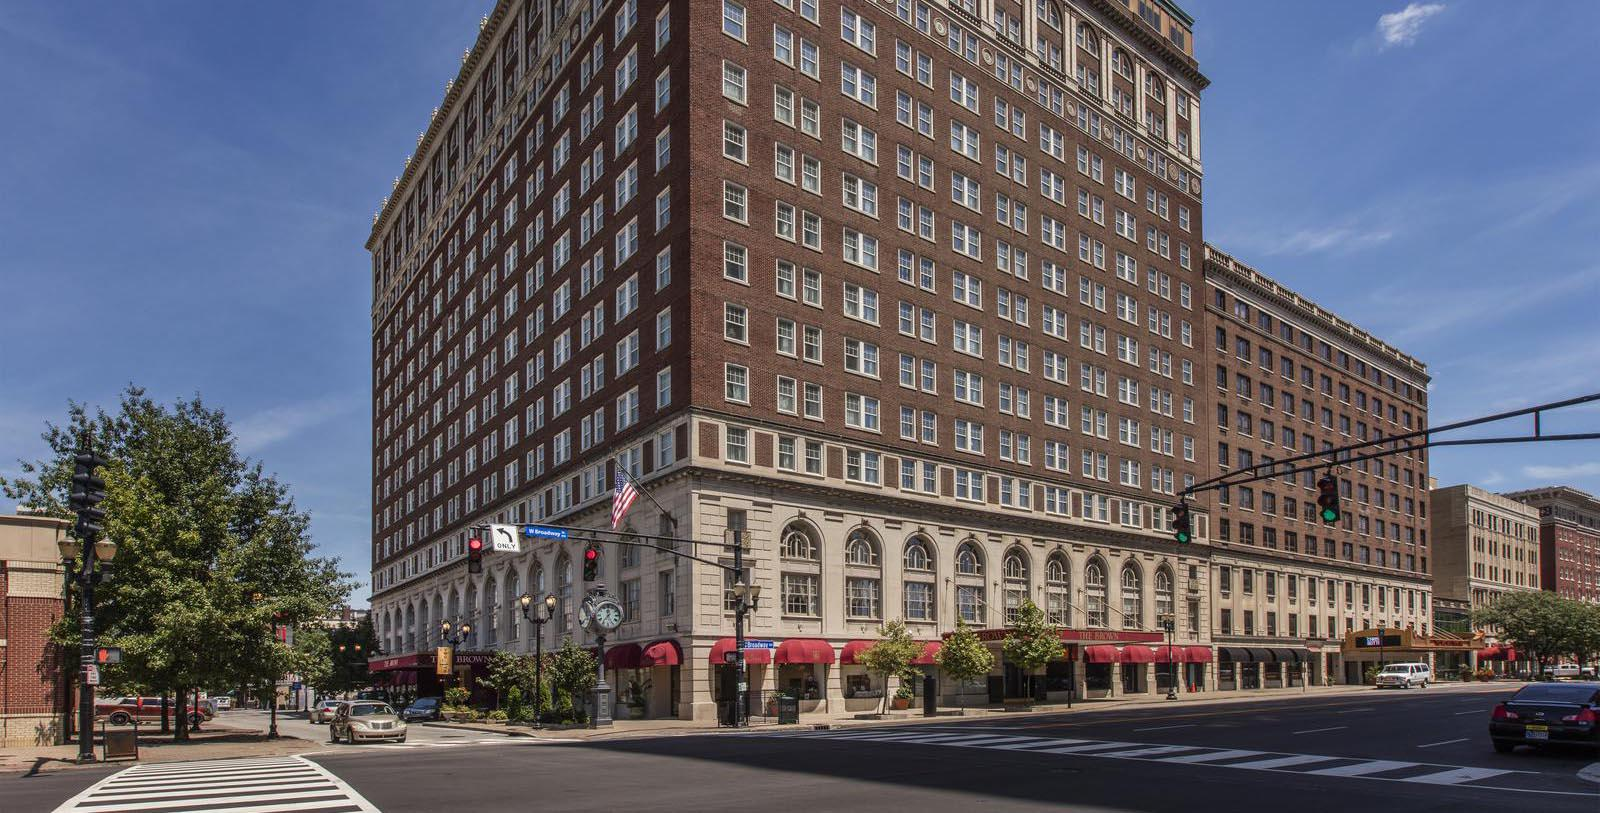 Image of Facade of The Brown Hotel, 1923, Member of Historic Hotels of America, in Louisville, Kentucky, Overview